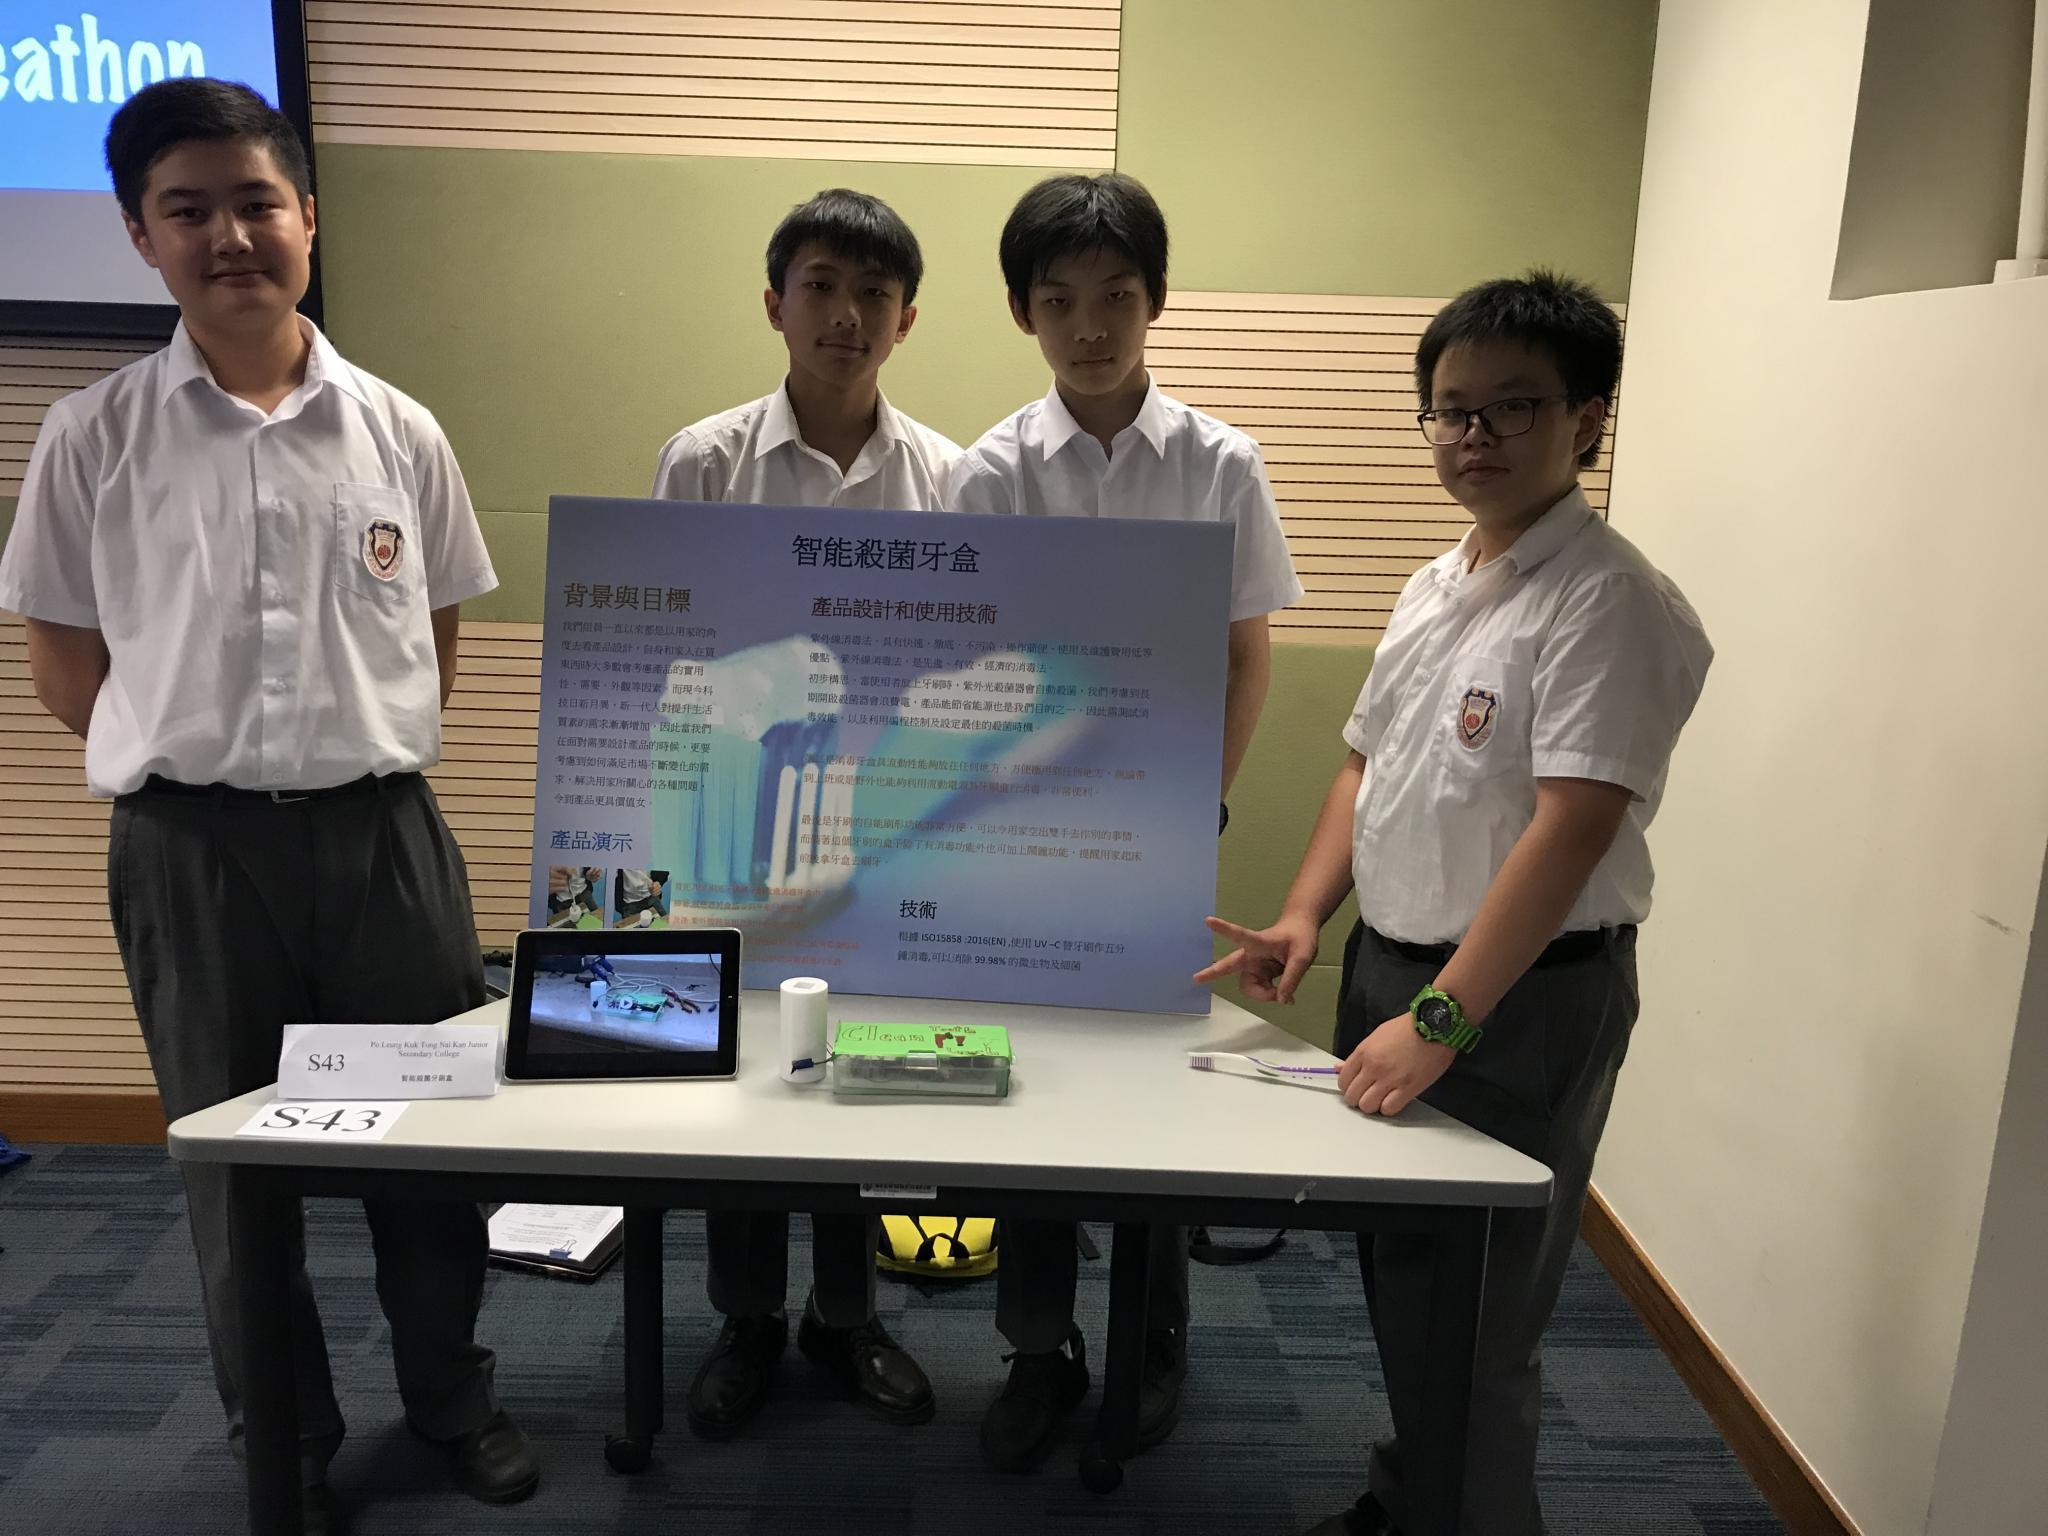 Two teams from the creativity think team entered the final round of the Hong Kong Product Design Makeathon.